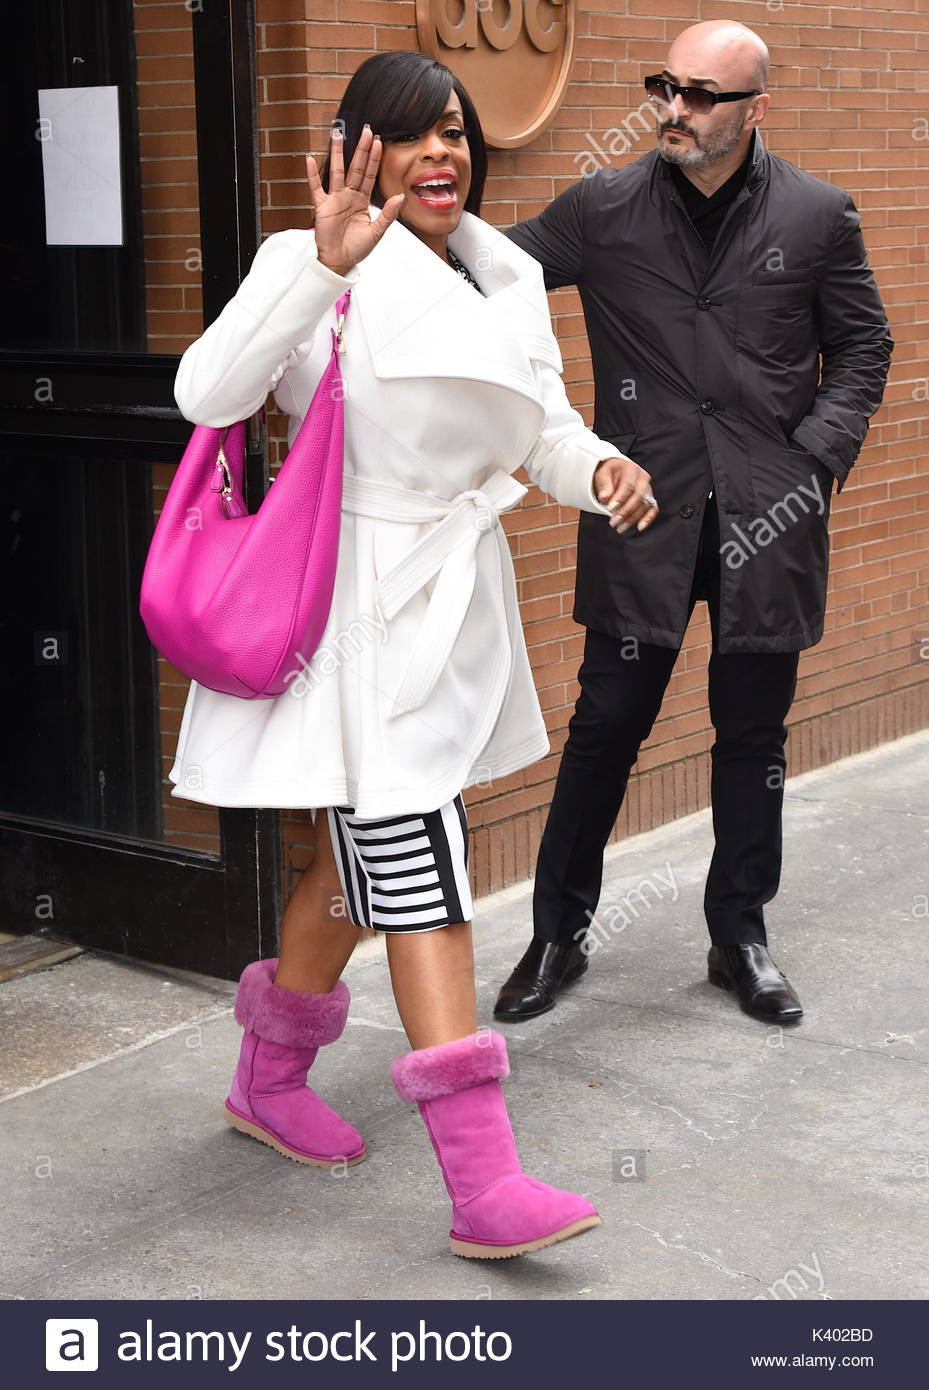 Niecy Nash seen leaving 'The View' in pink UGG boots and carrying a matching handbag today in NYC